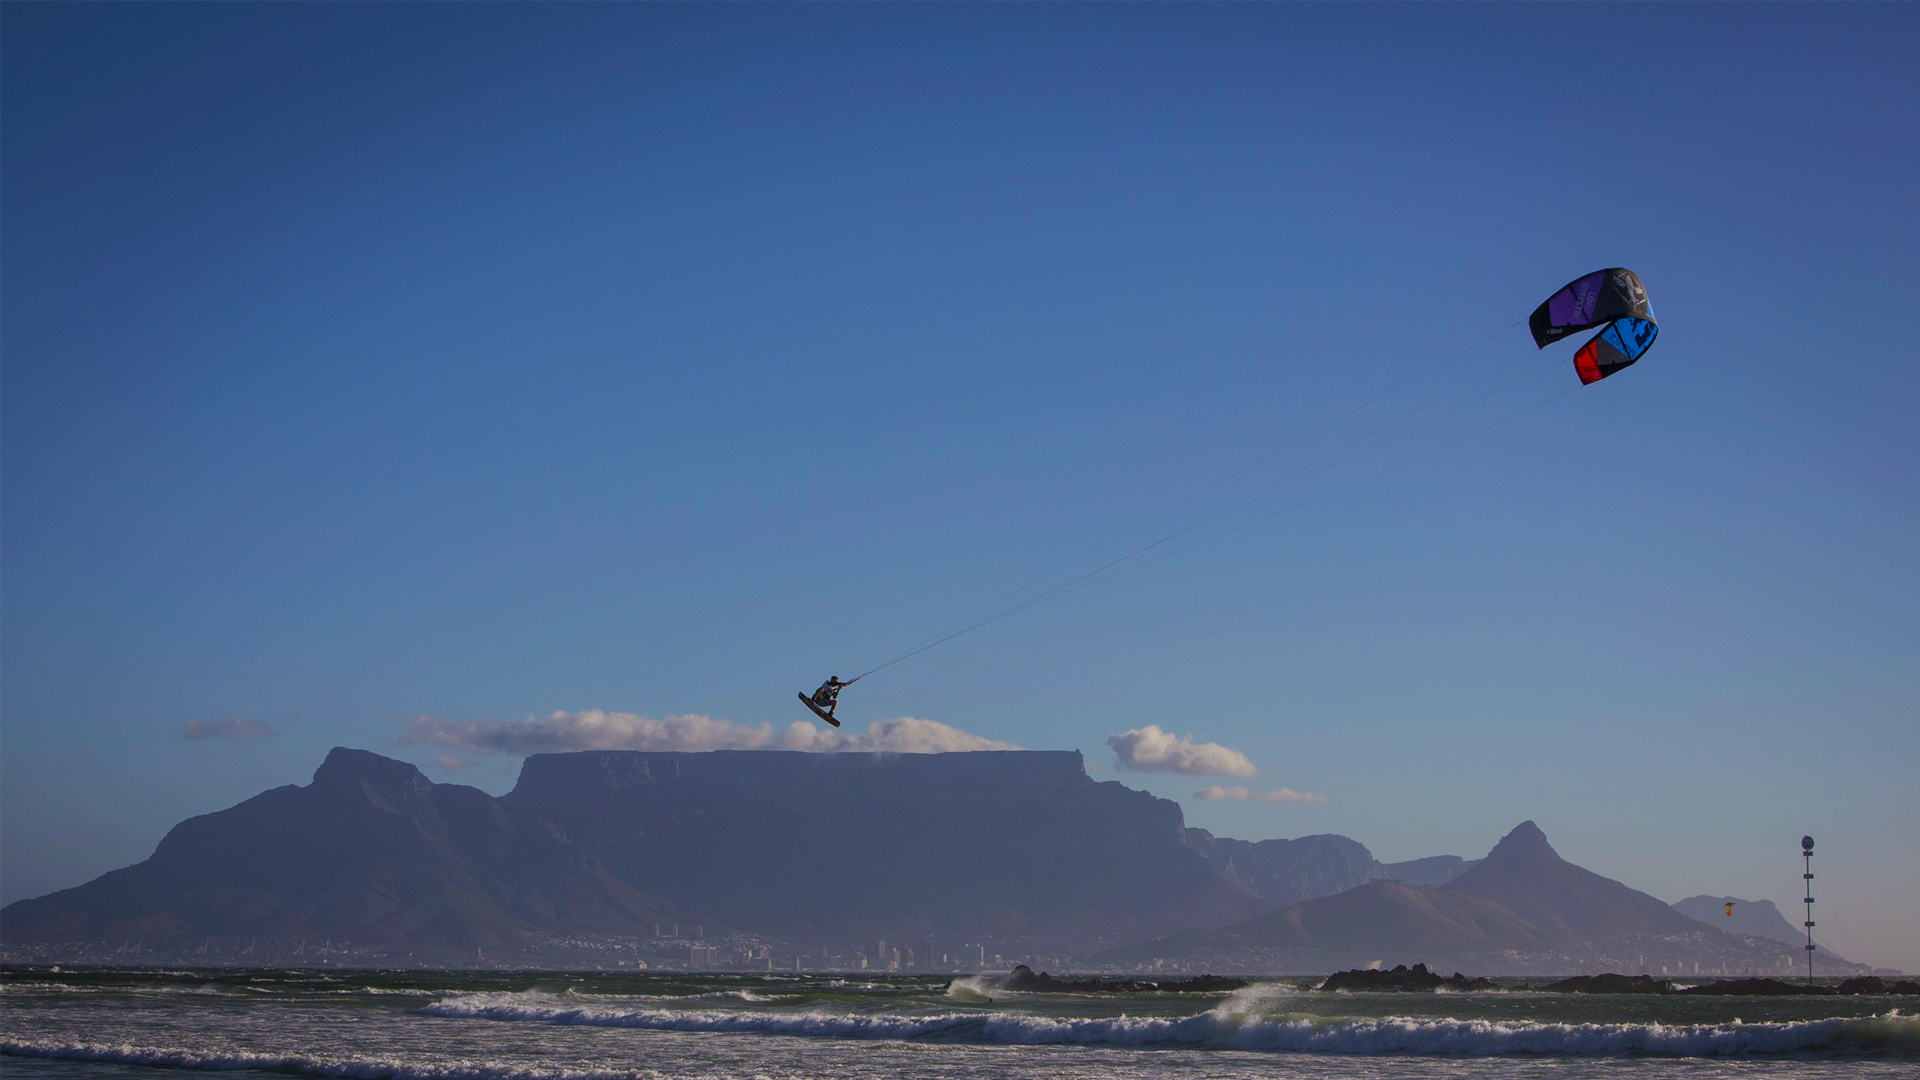 kitesurf wallpaper image - Ruben Lenten megaloop at the Red Bull King of the Air on the Best Extract kite - flying above table mountain    - in resolution: High Definition - HD 16:9 1920 X 1080